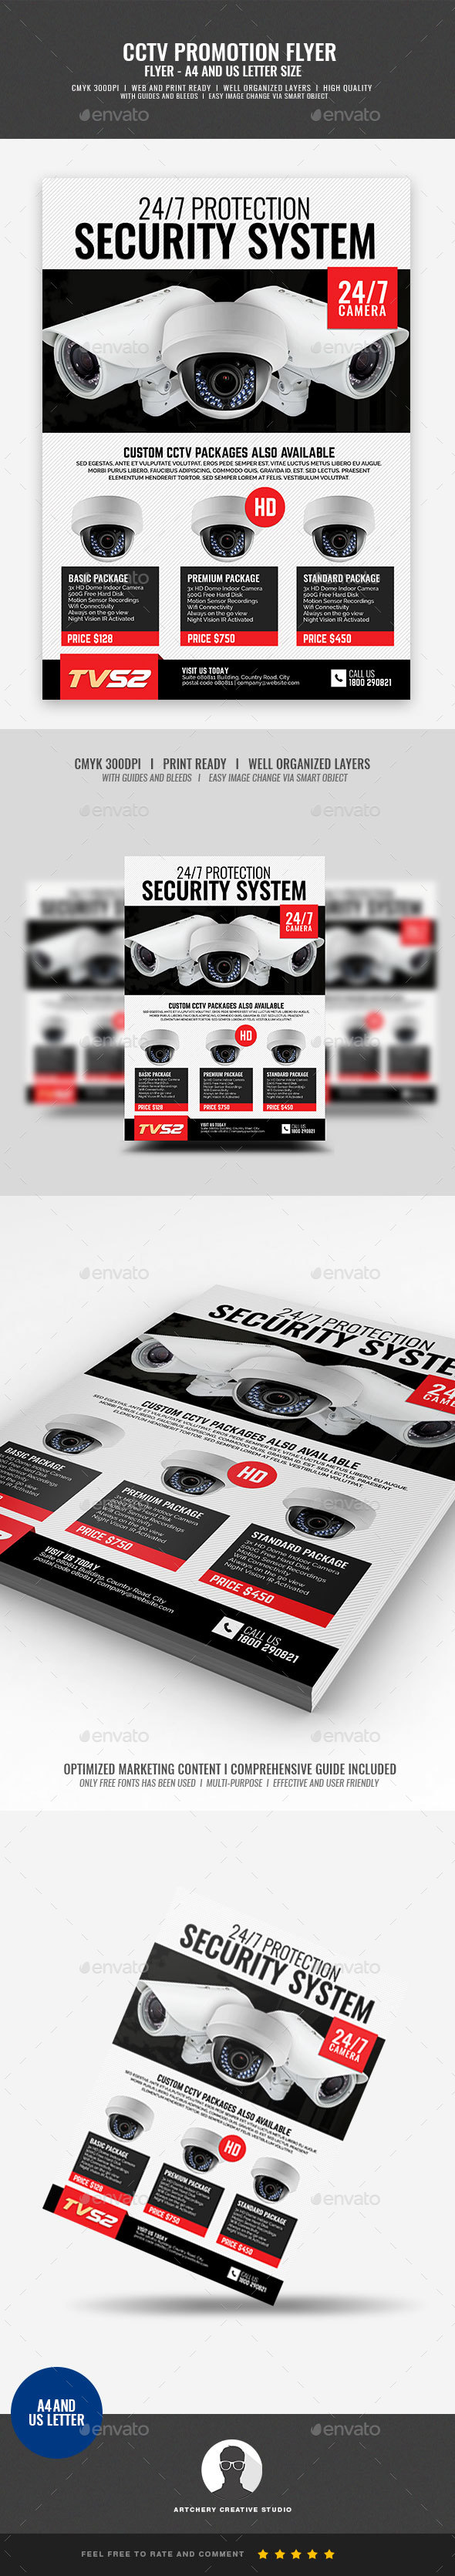 CCTV Product Flyer - Corporate Flyers